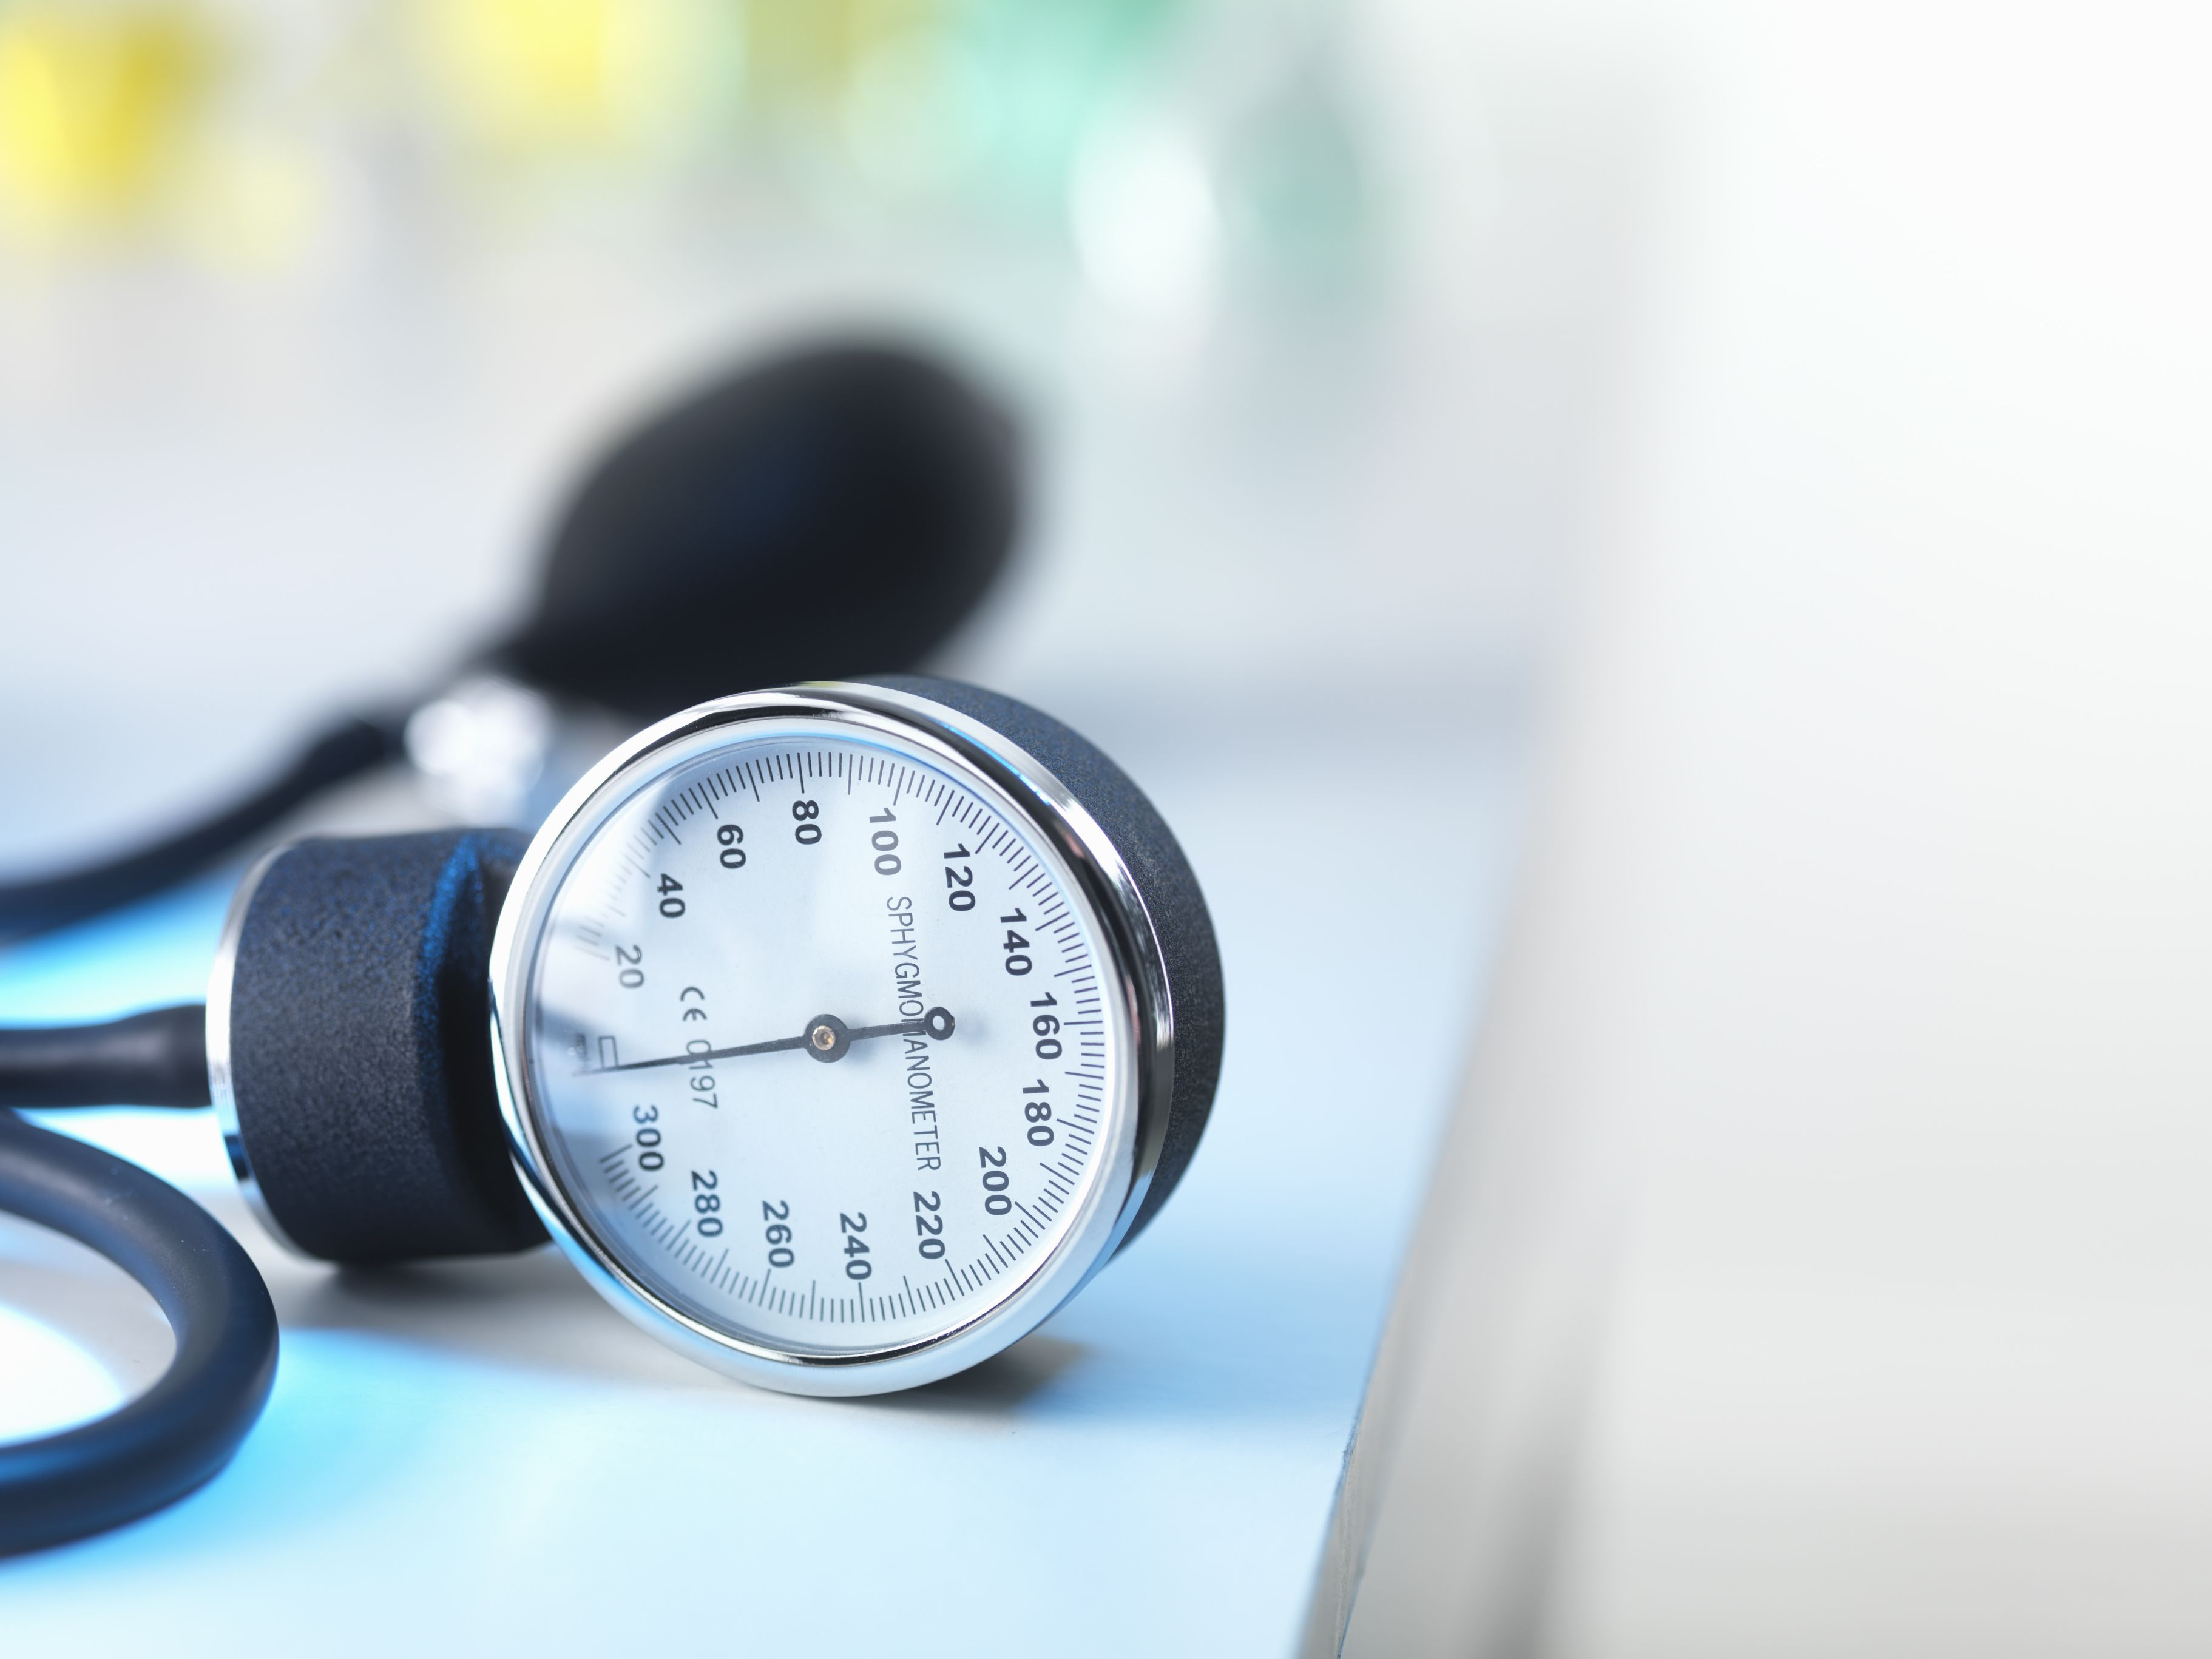 An Overview of Hypertension (High Blood Pressure)